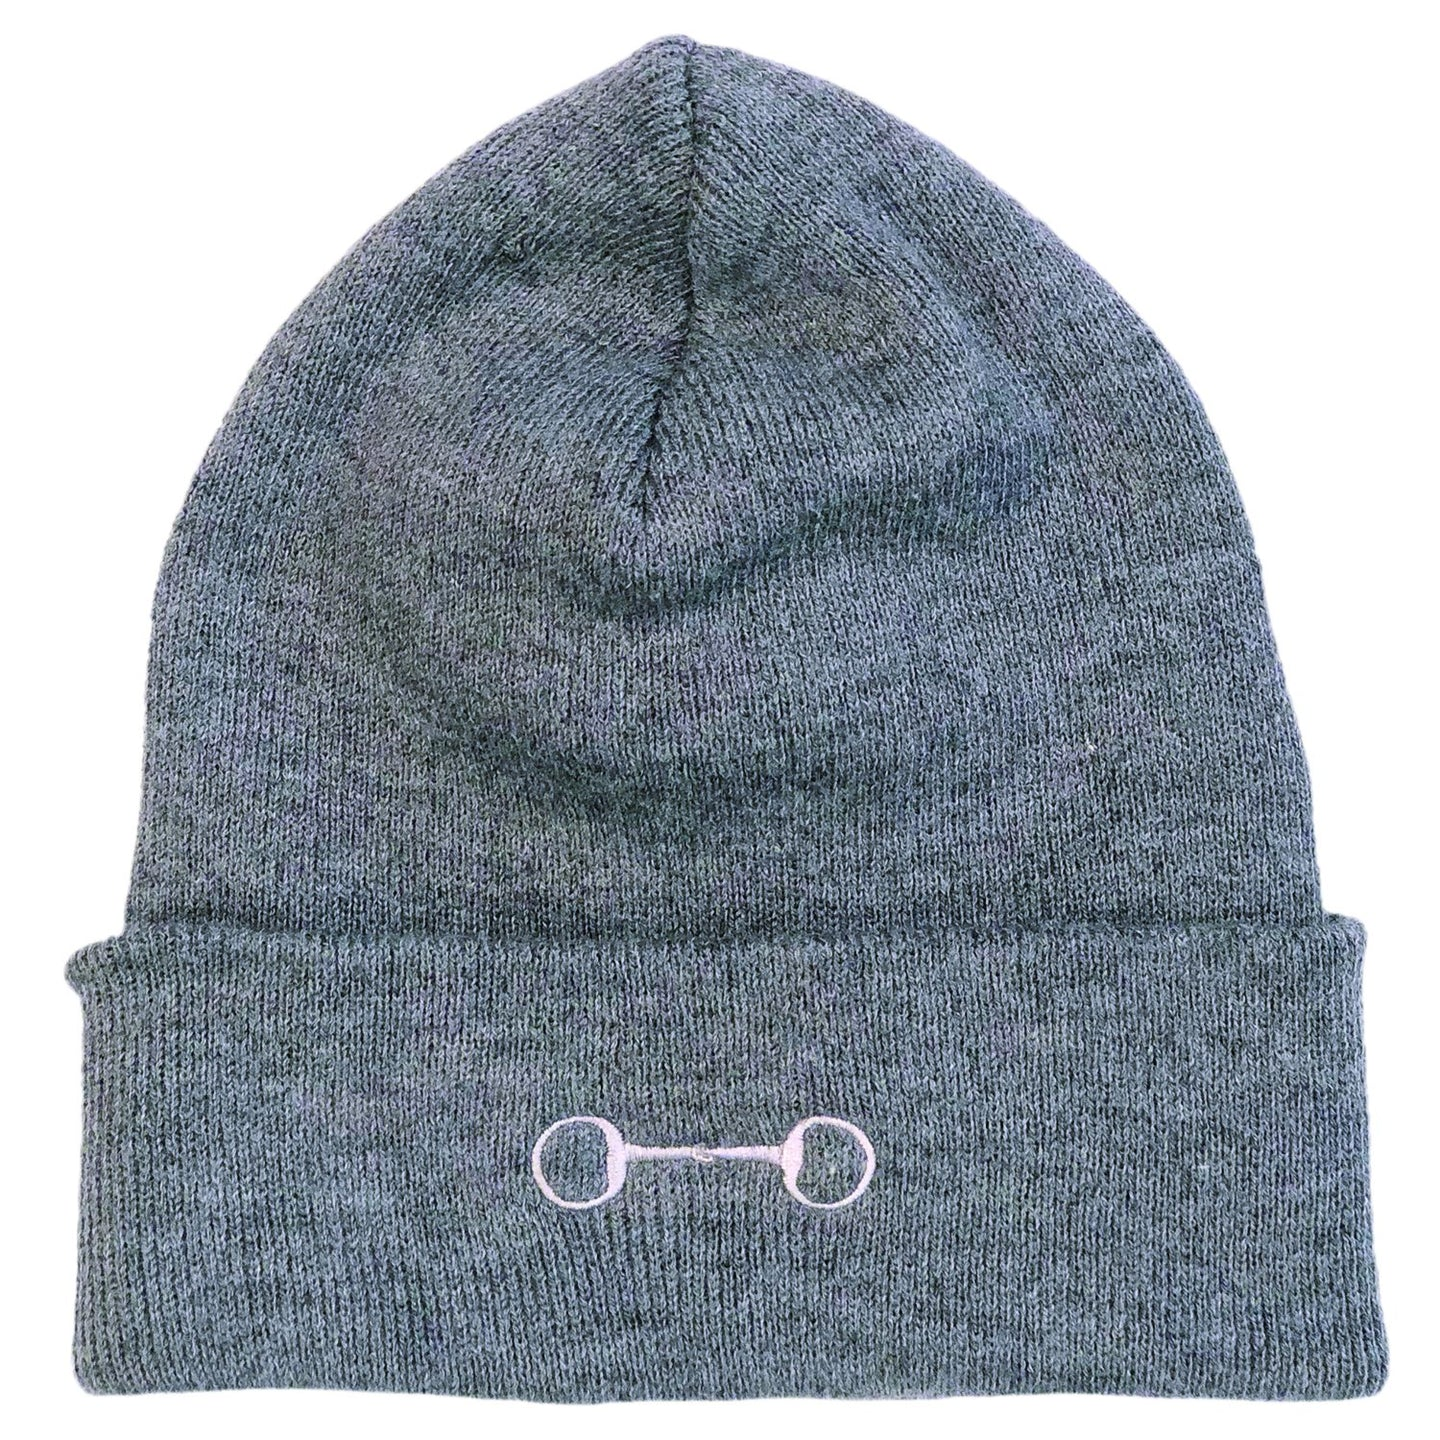 HA213 Eggbutt Bit Grey Knit Cap